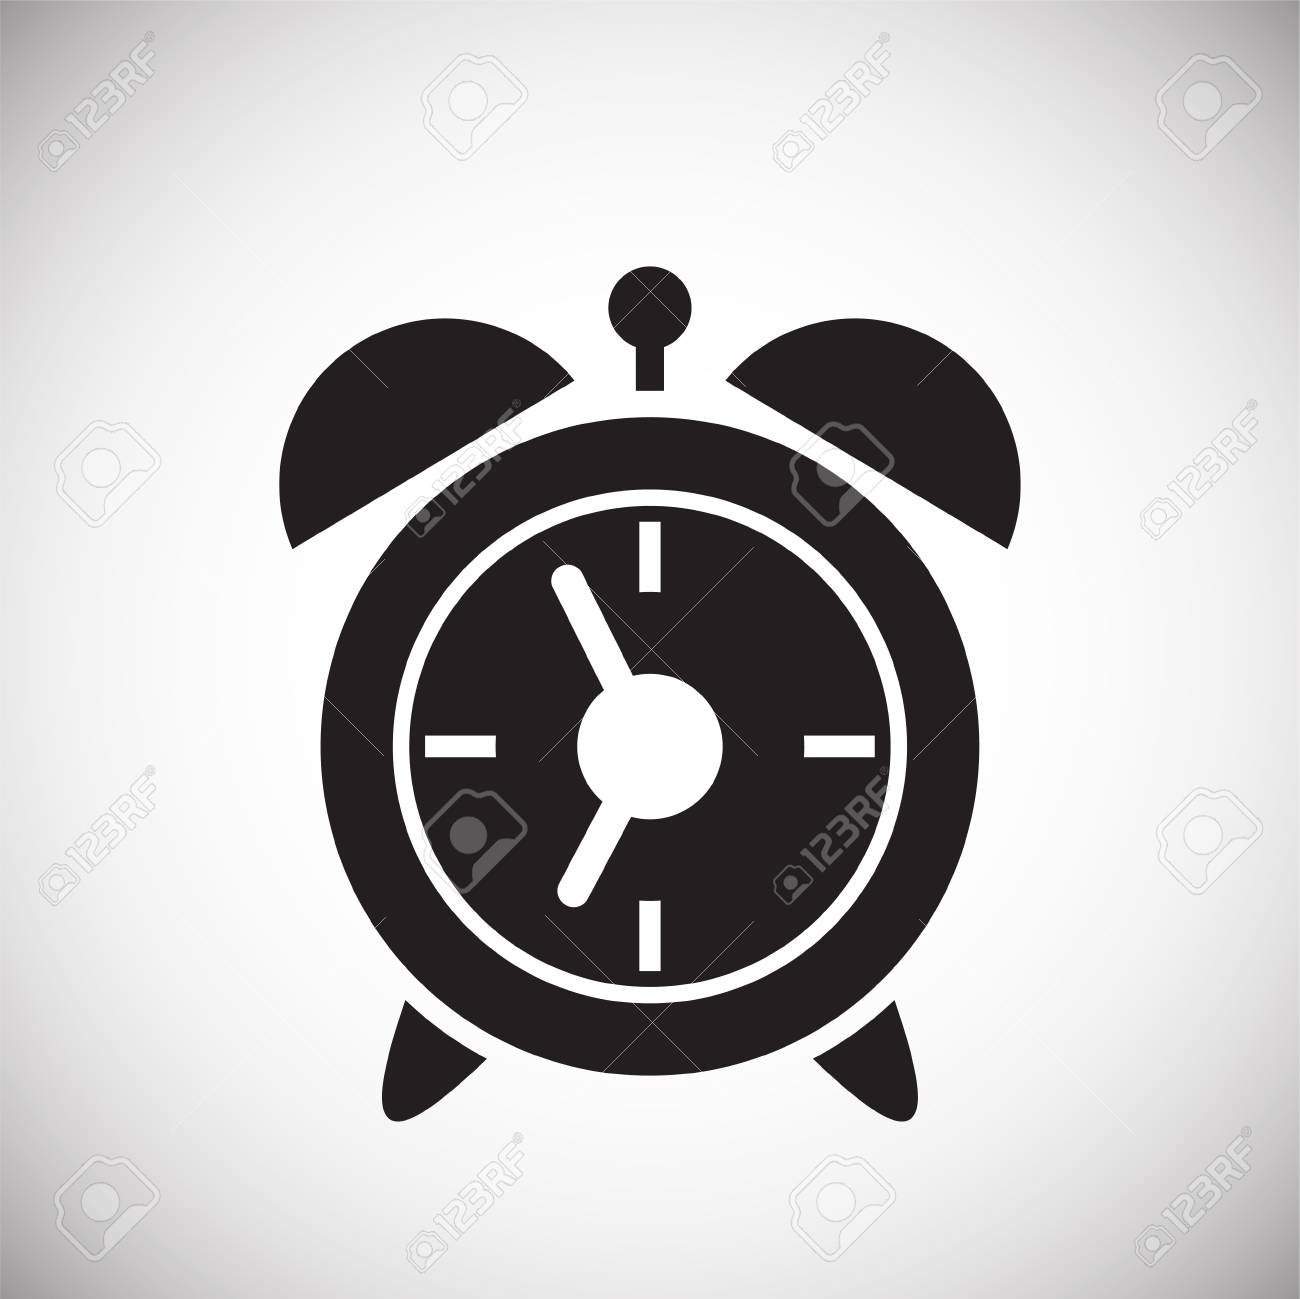 Alarm clock icon on white background for graphic and web design,